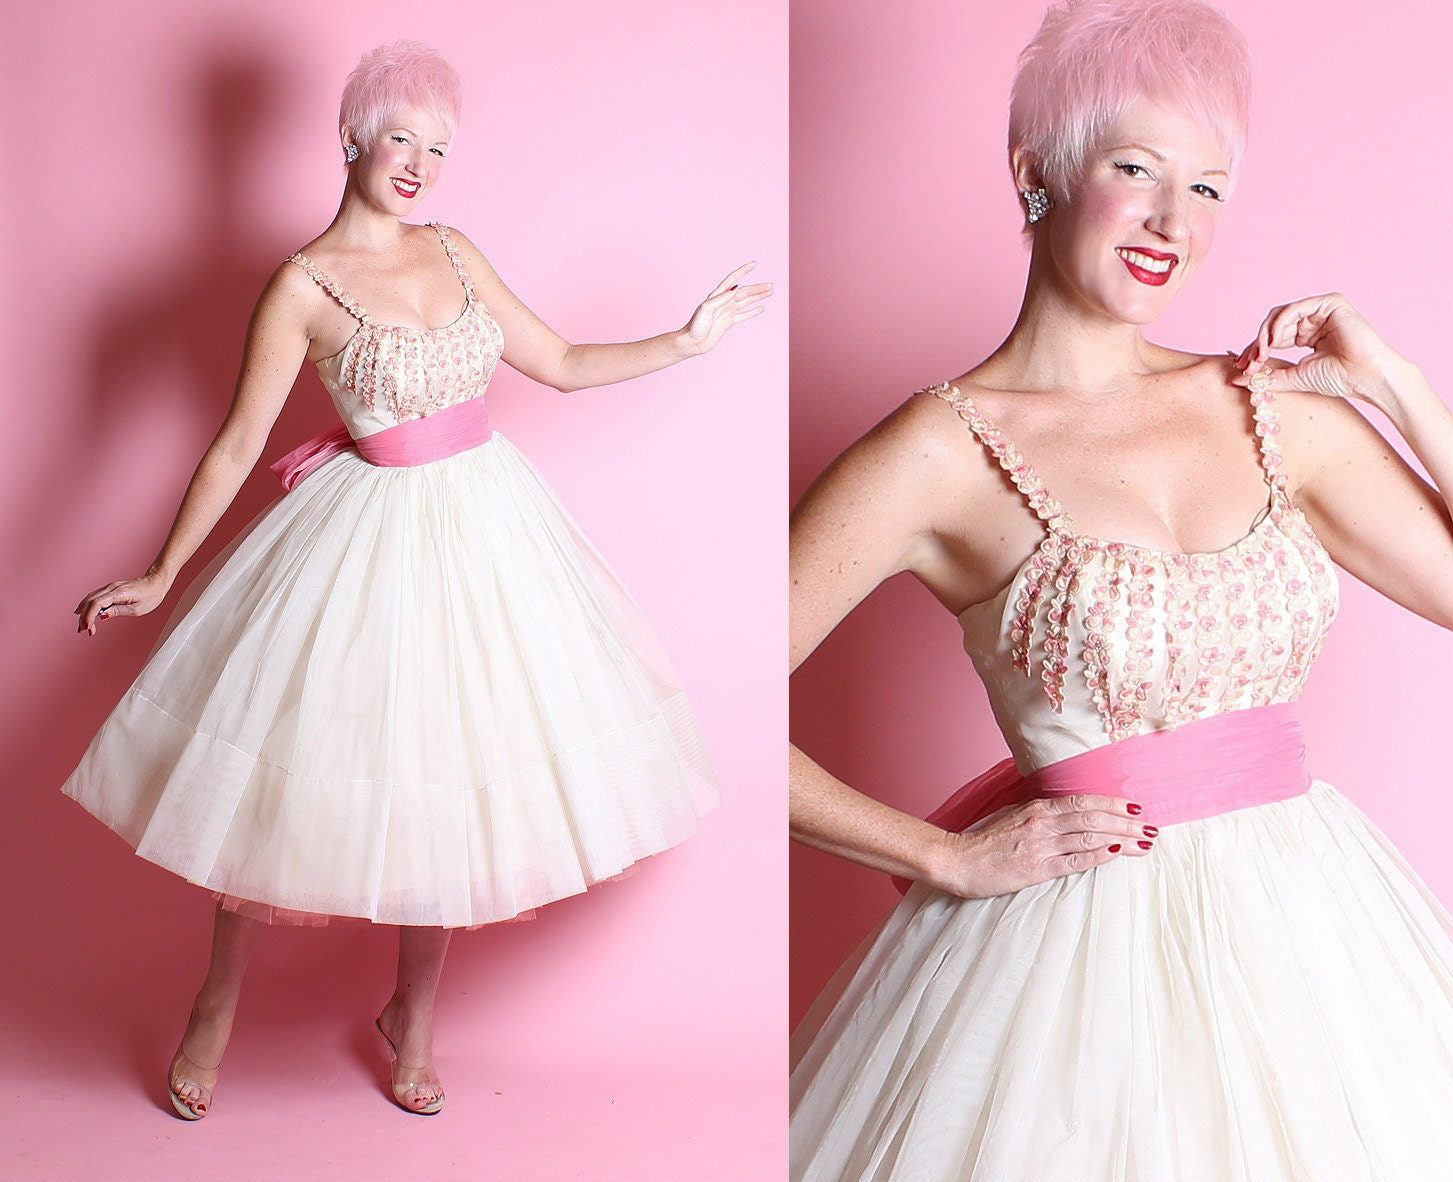 RESERVED 1950's New Look Sheer Chiffon Over Satin Party Dress w/ Embroidered Flowers Covered Shelf Bust w/ Rhinestones & Long Sash Tie Belt